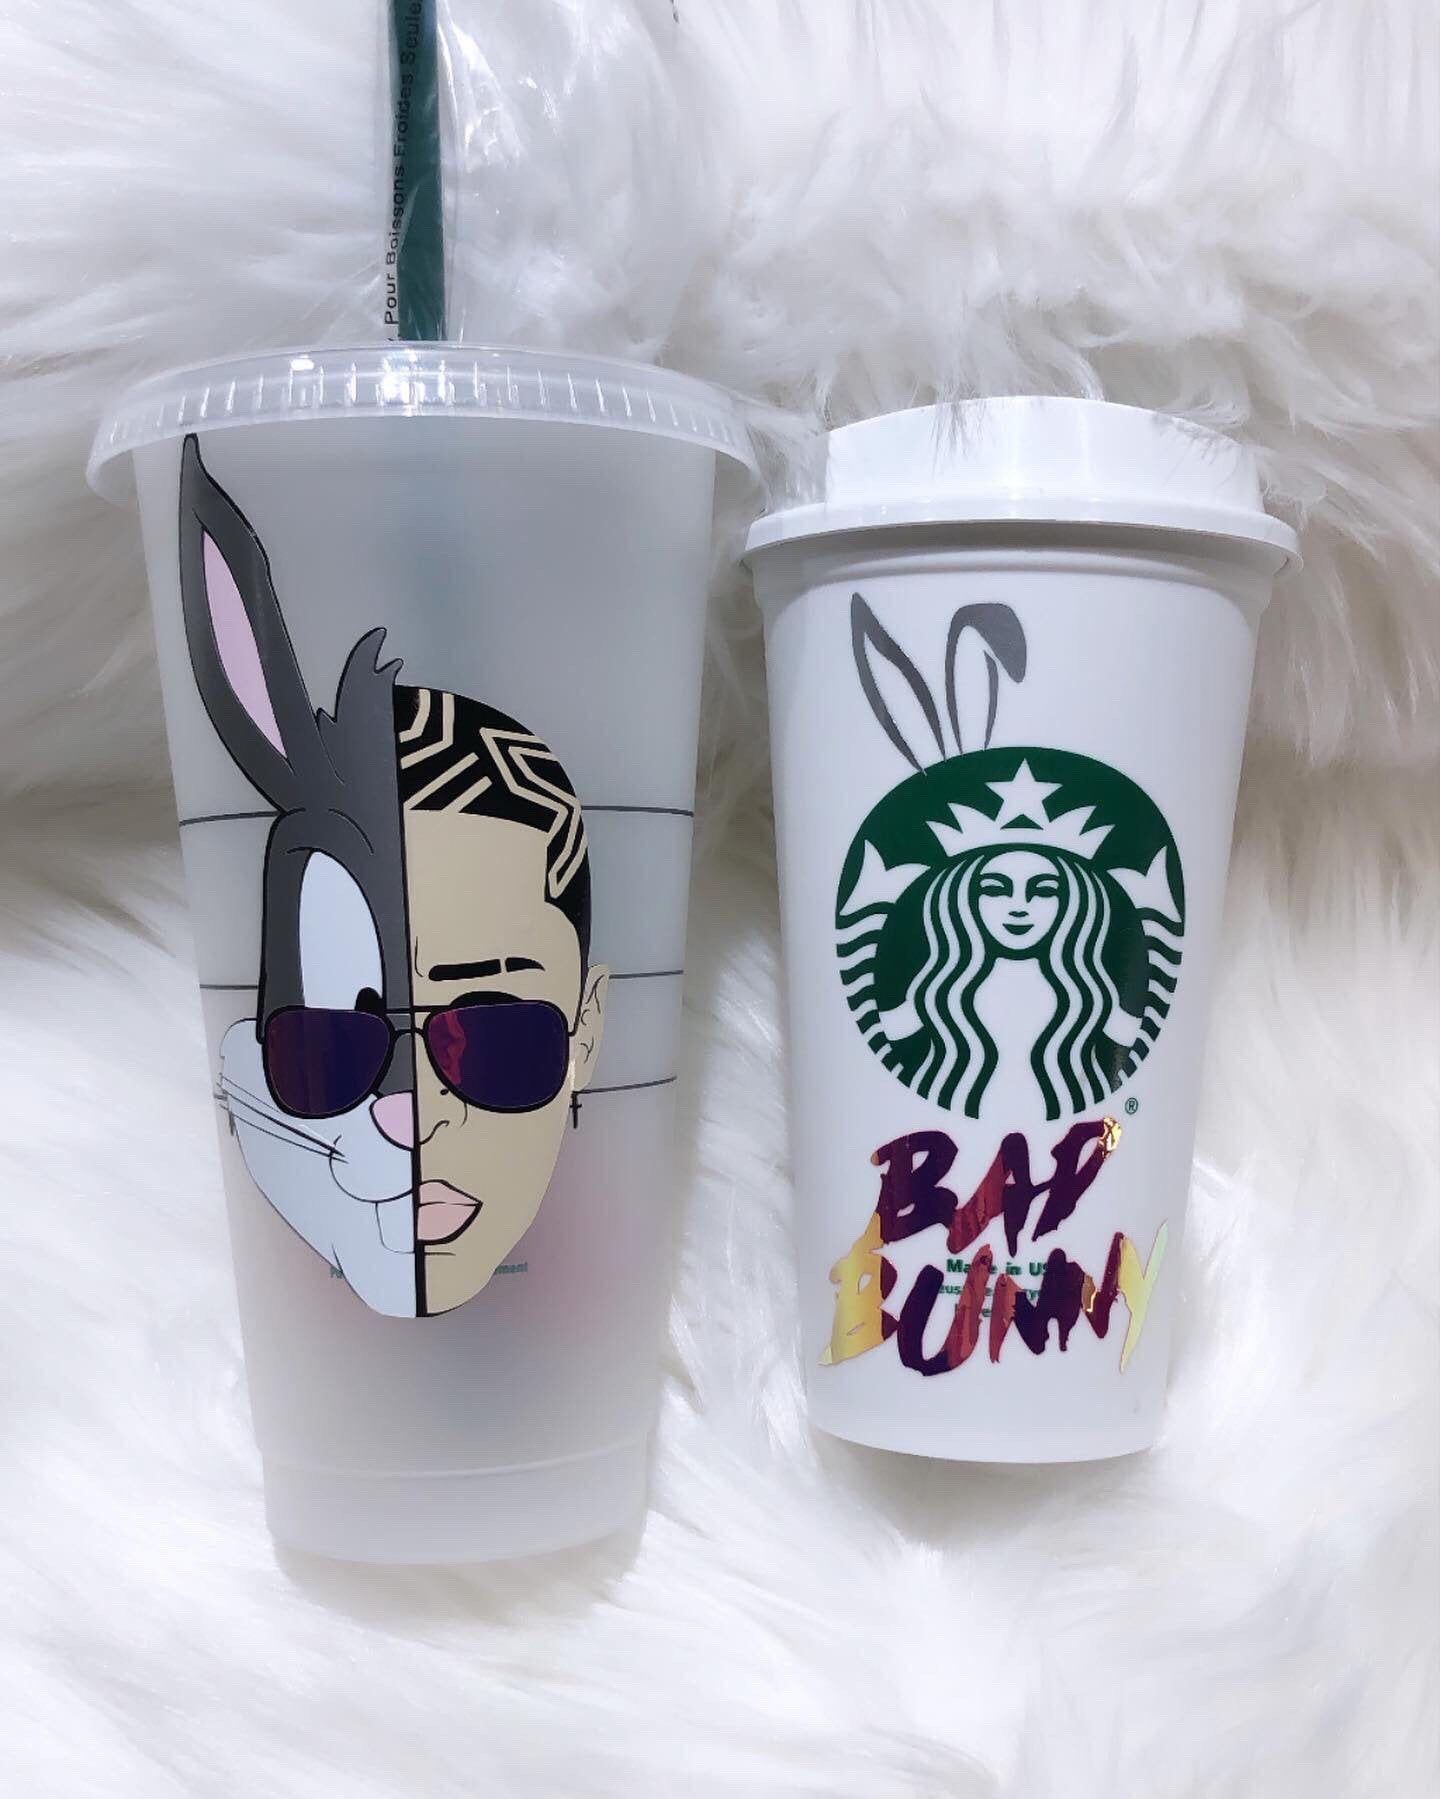 Bad Bunny Inspired Tumblers El Nino Malo Tumbler Bad Bunny Etsy In 2020 Personalized Starbucks Cup Custom Starbucks Cup Coffee Cup Design